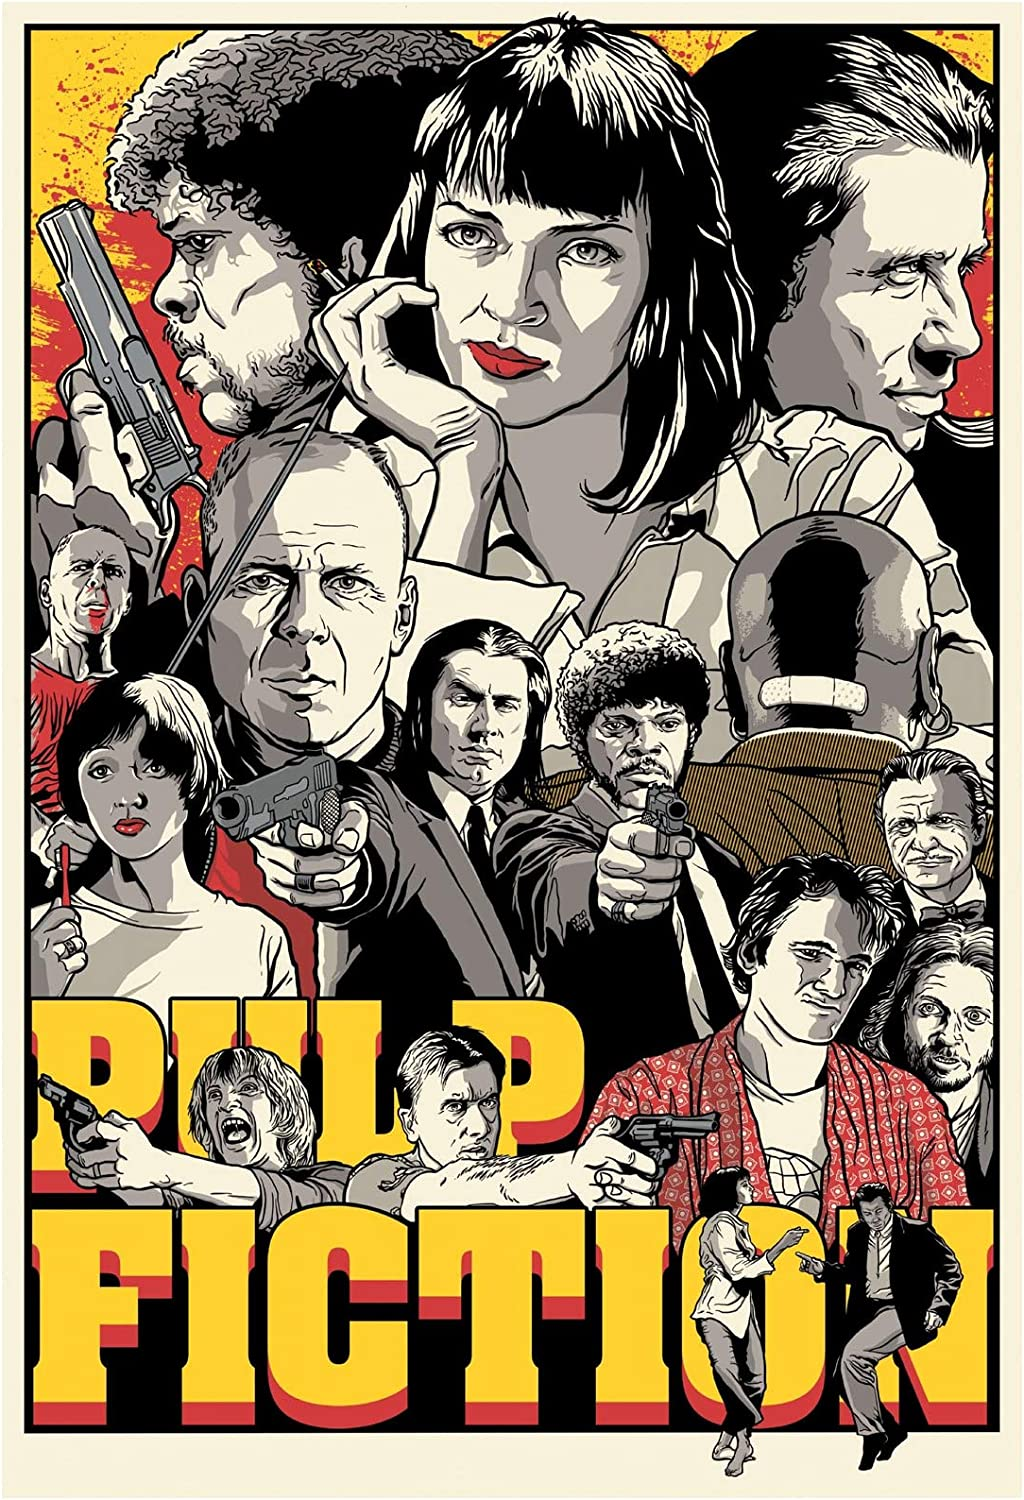 Buy Pulp Fiction Movie Poster 20 x 20 Inches Full Sized Print ...